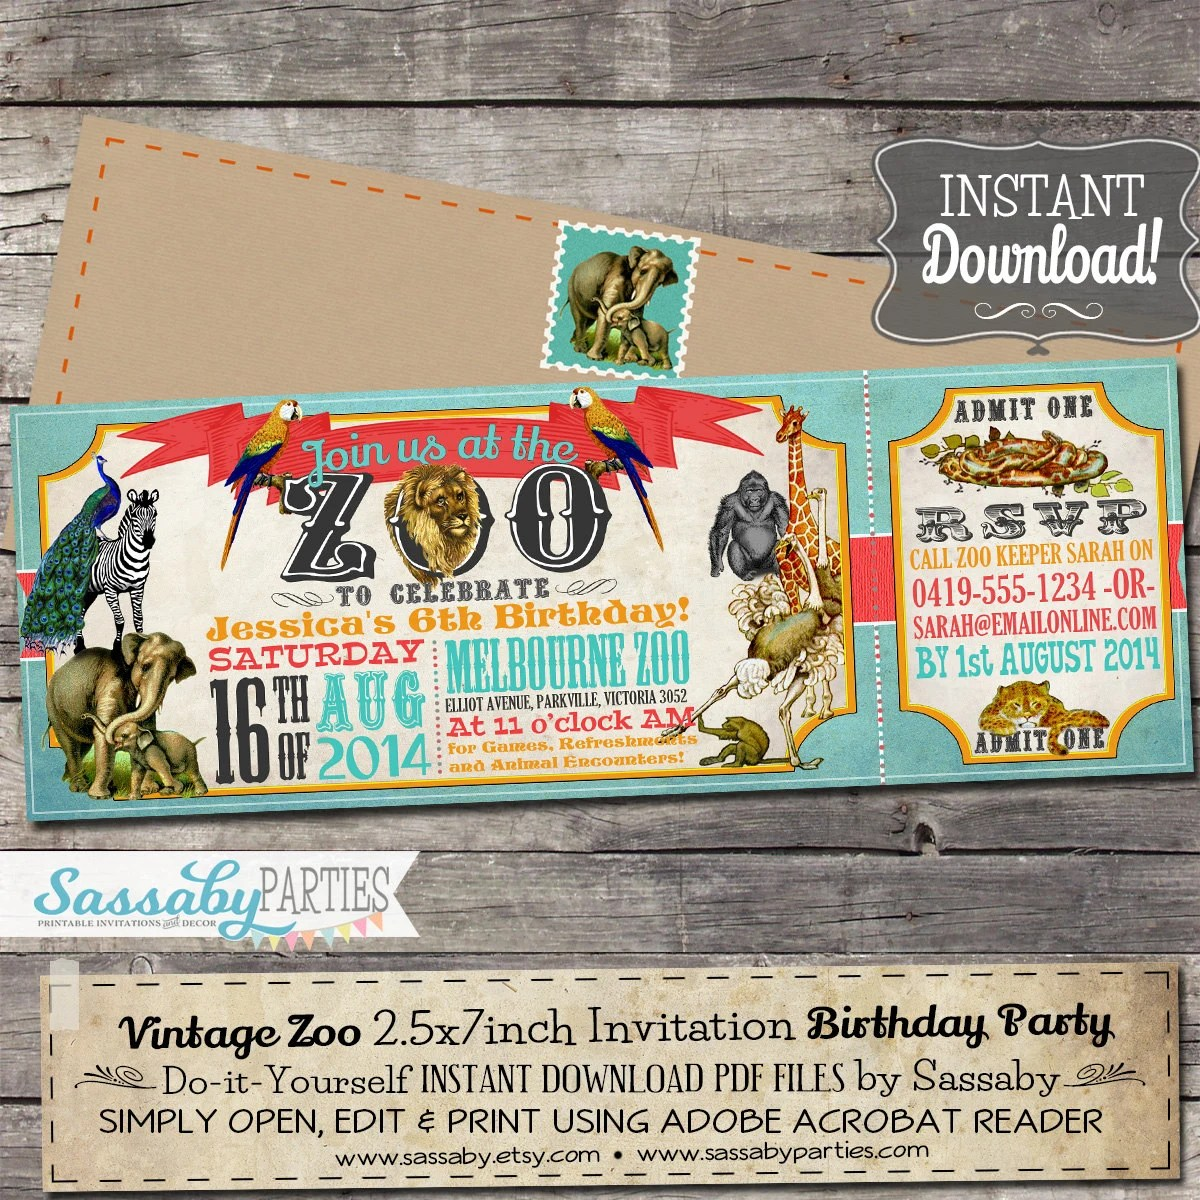 Vintage Zoo Ticket Invitation INSTANT DOWNLOAD Editable